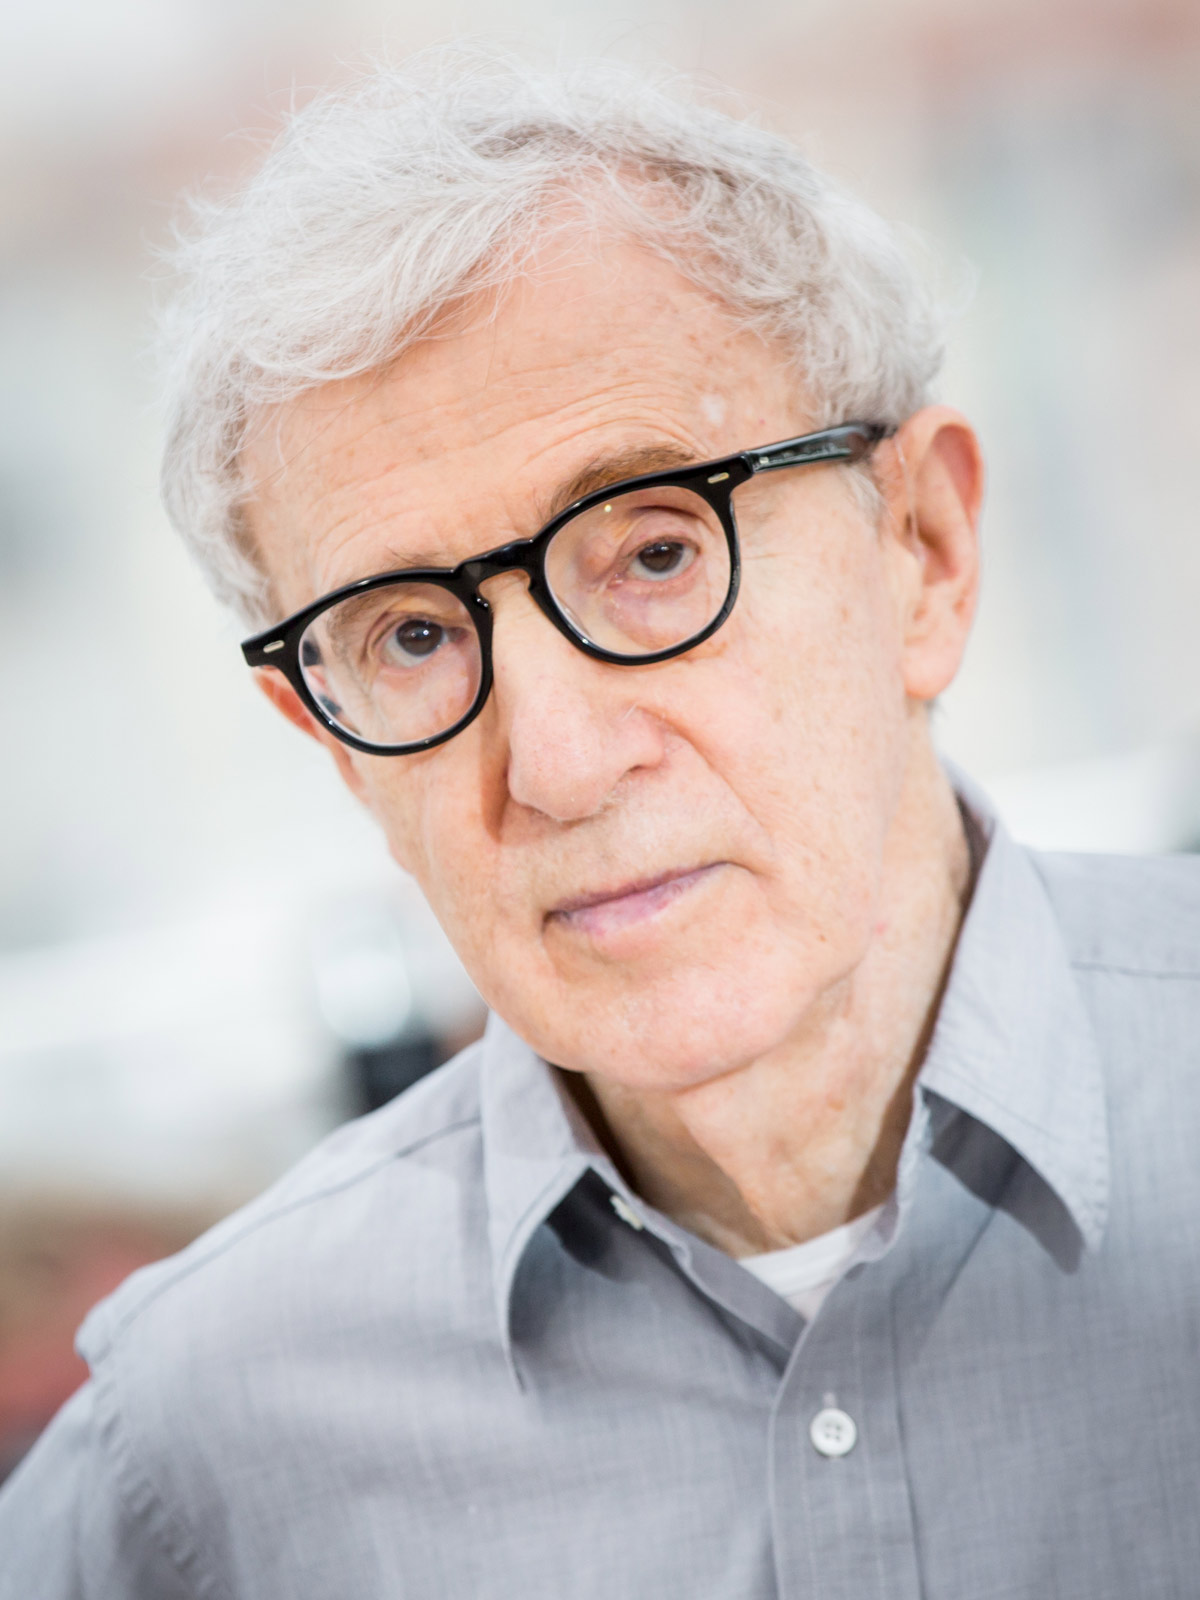 ¿Cuánto mide Woody Allen? - Real height 442352